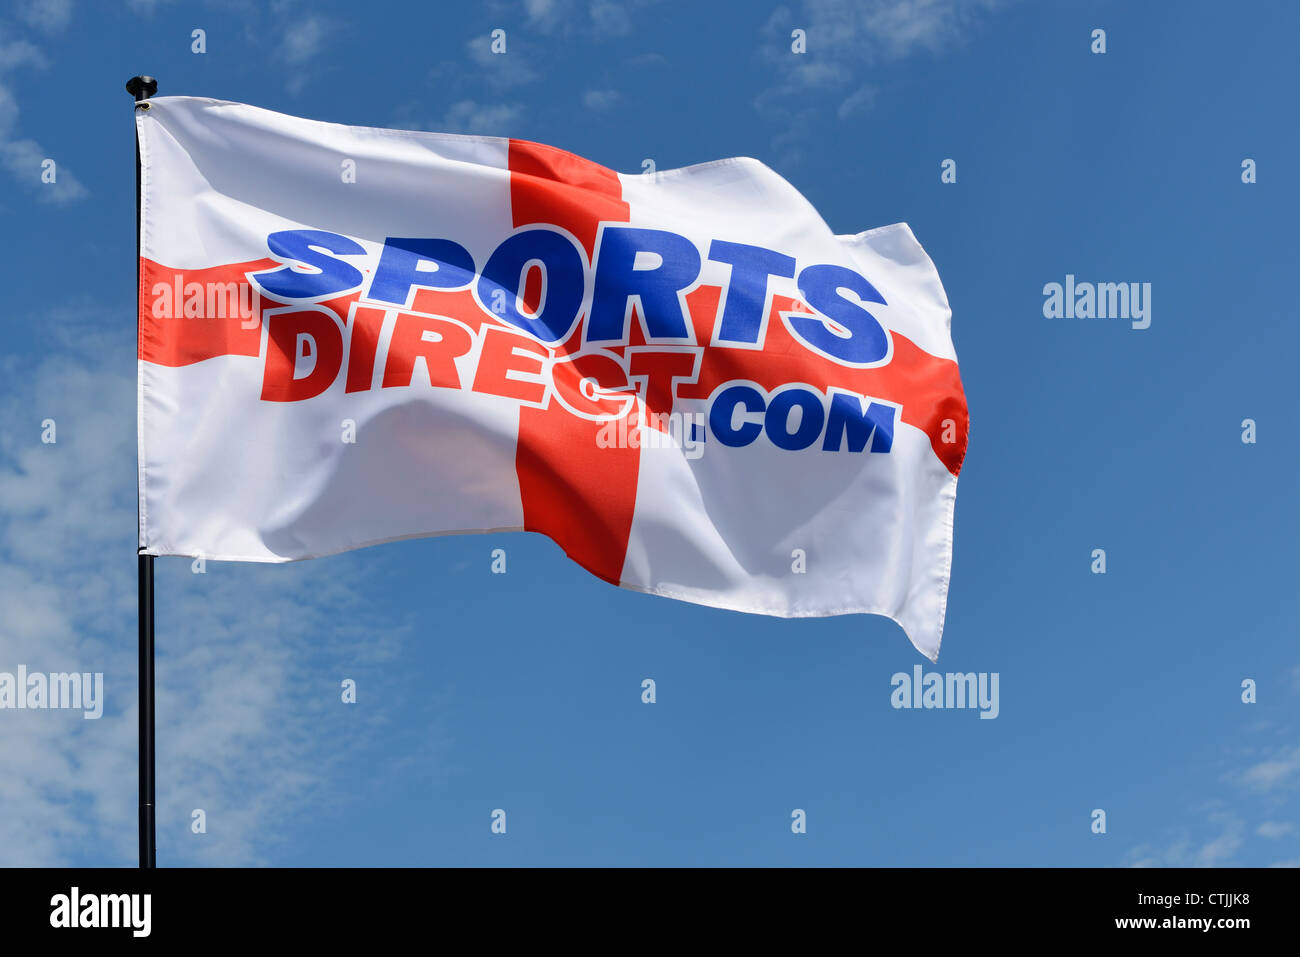 Sports Direct St George flag logo - Stock Image